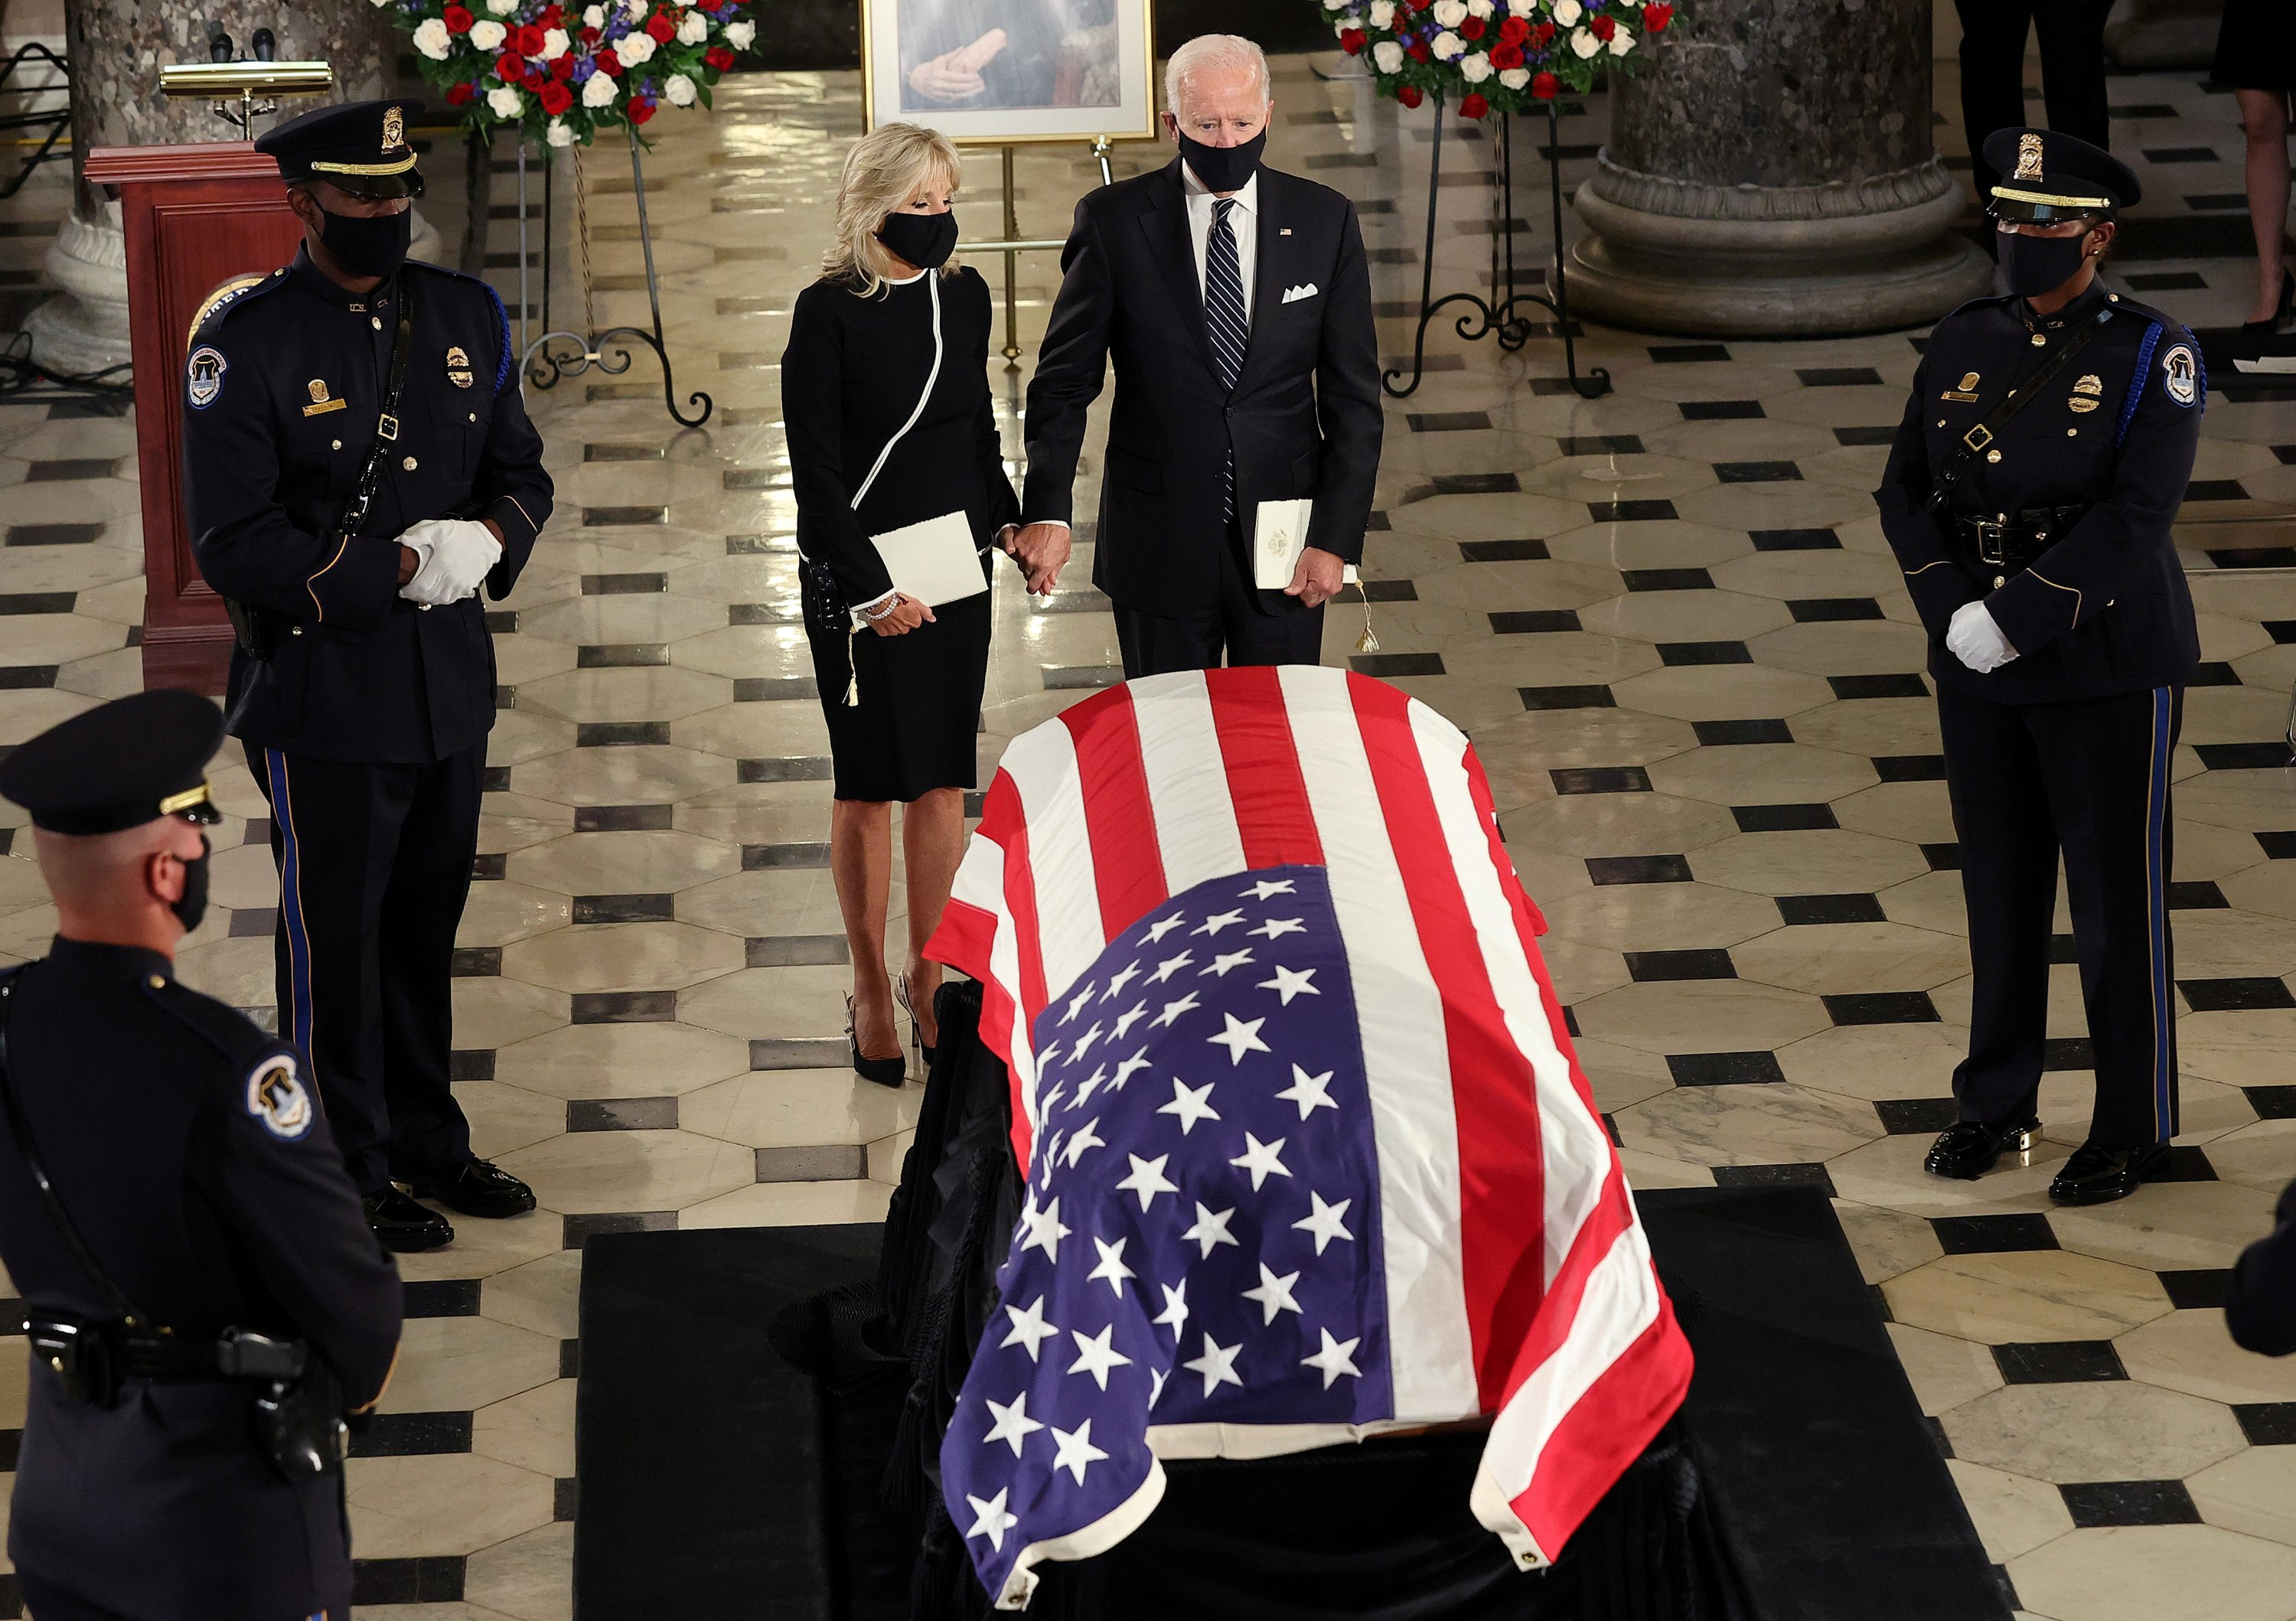 Jill Biden (C-L) and her husband, U.S. Democratic presidential candidate Joe Biden, pay their respects at a ceremony where U.S. Supreme Court Associate Justice Ruth Bader Ginsburg's flag-draped casket will lie in state in Statuary Hall at the Capitol, Washington, D.C, the U.S., Sept. 25, 2020. (Reuters Photo)